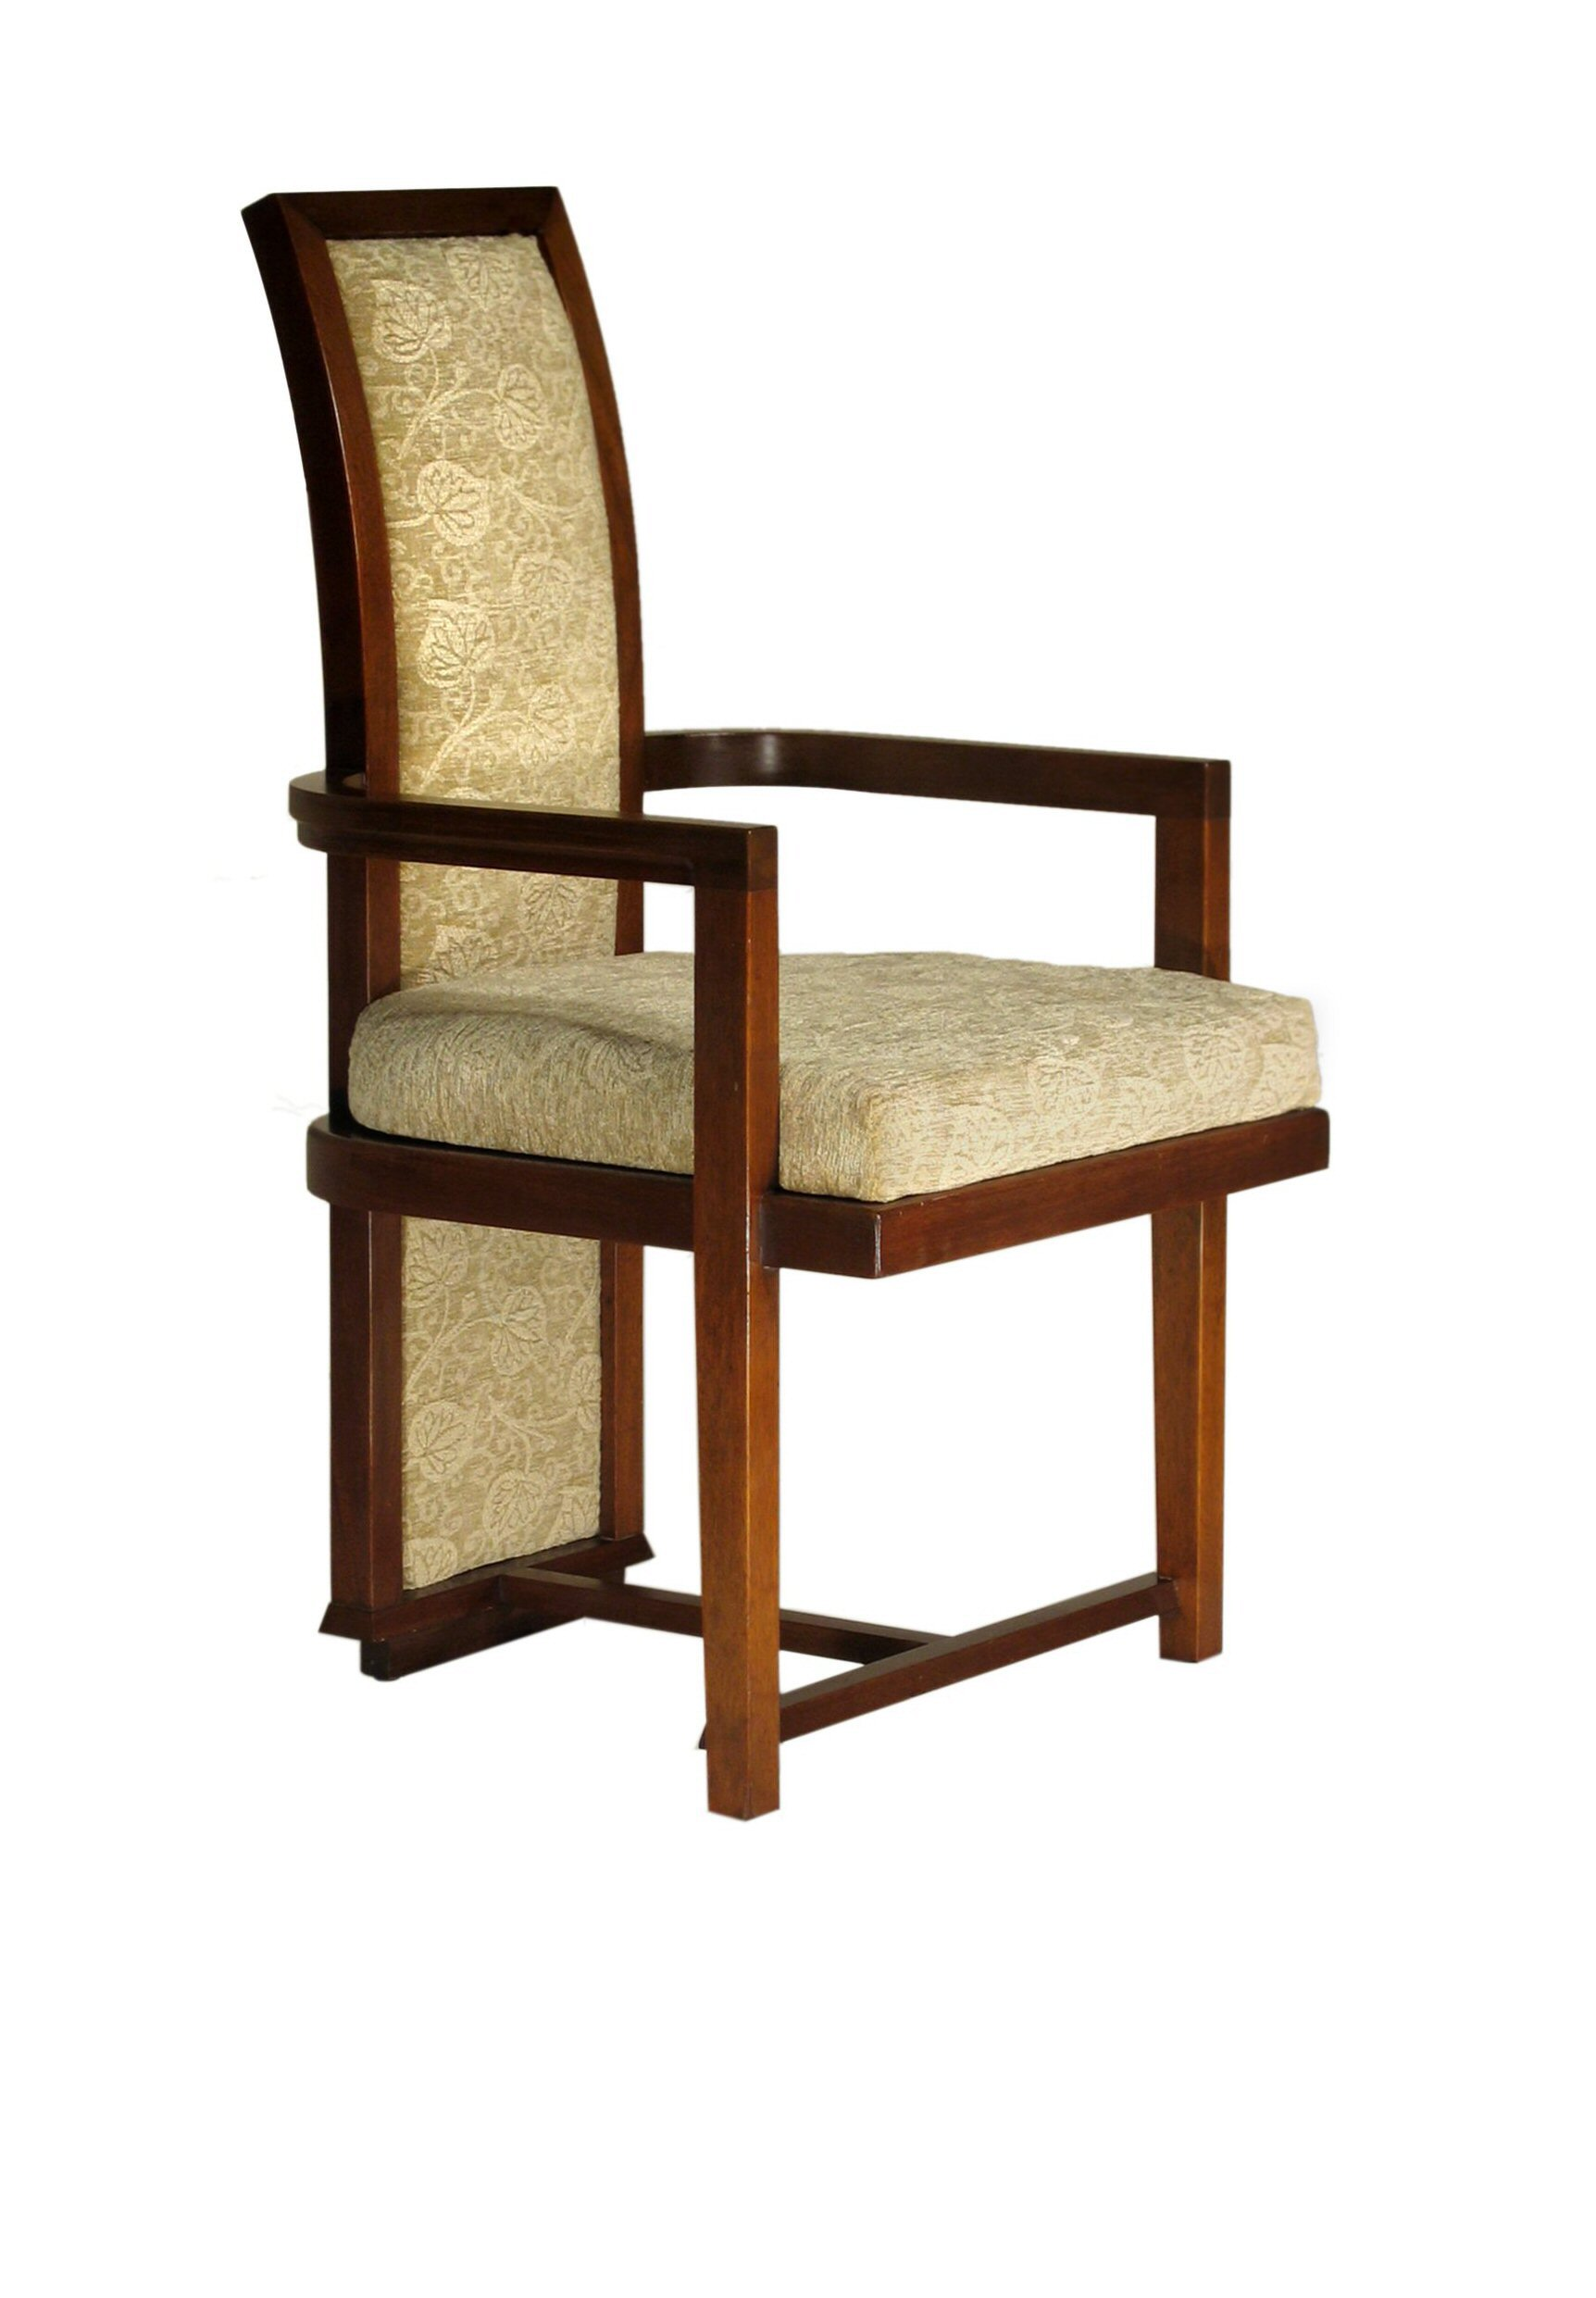 LPOS Peter Kelley #5 Pair Frank Lloyd Wright Chair.jpg